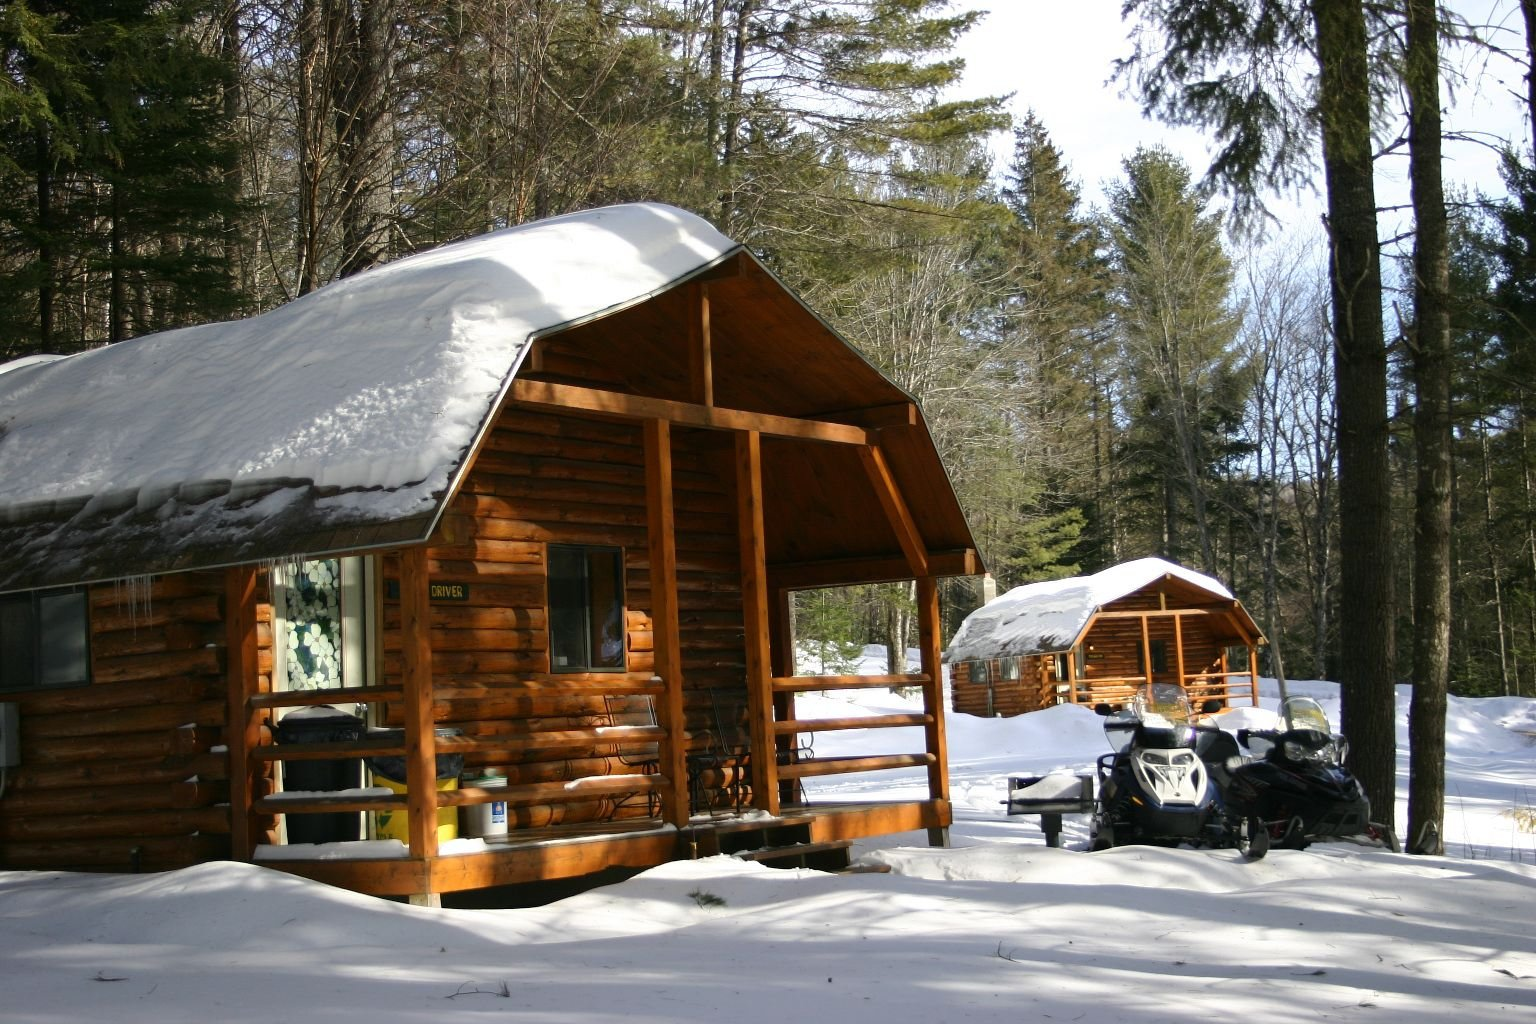 Our popular Cozy Cabins are 1 bedroom cabins that sleep 2-3 people.